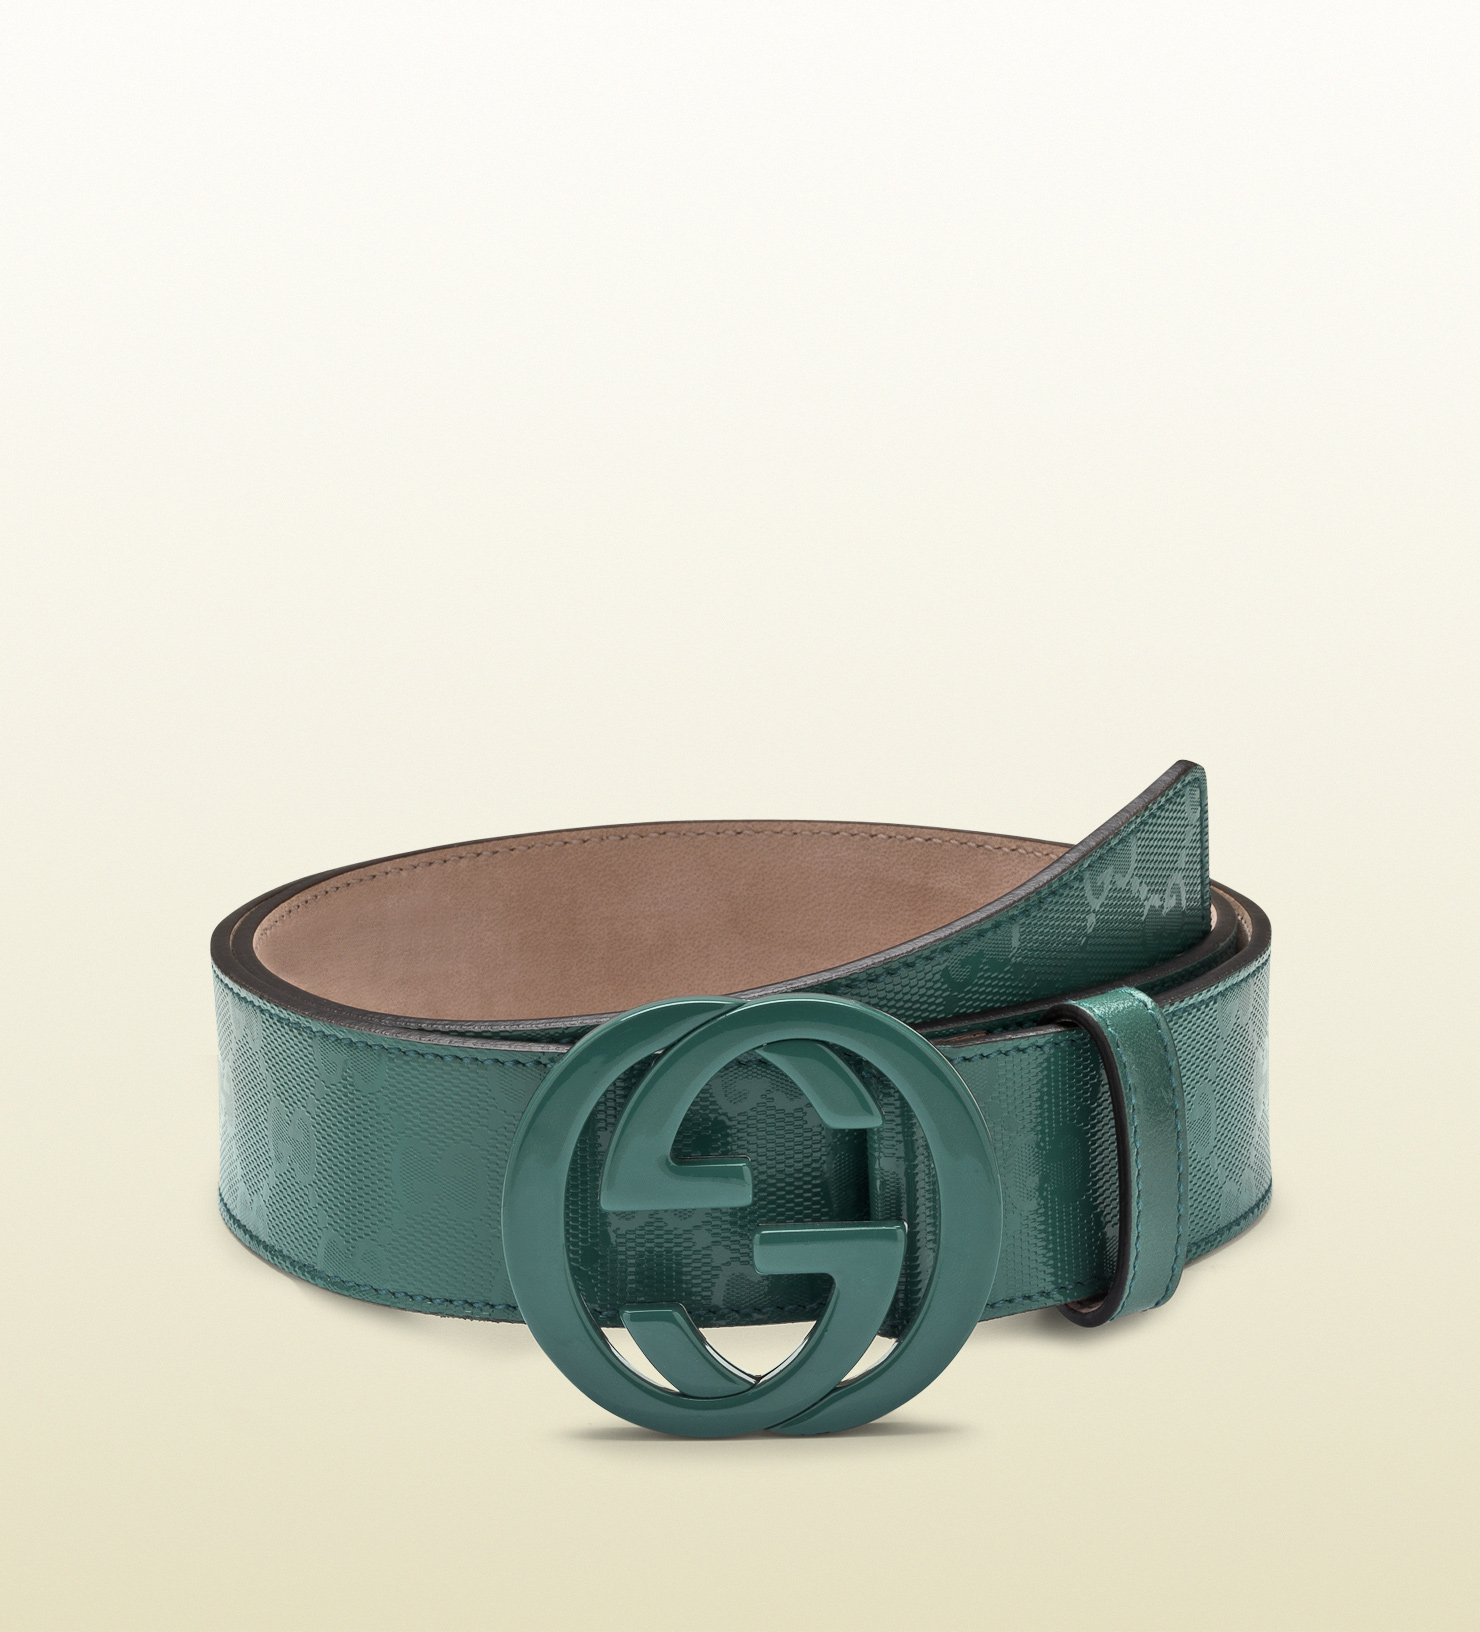 03df83a8e All Green Gucci Belt Image Mesufferersmalta. Crocodile Belt With Double G  Buckle ...